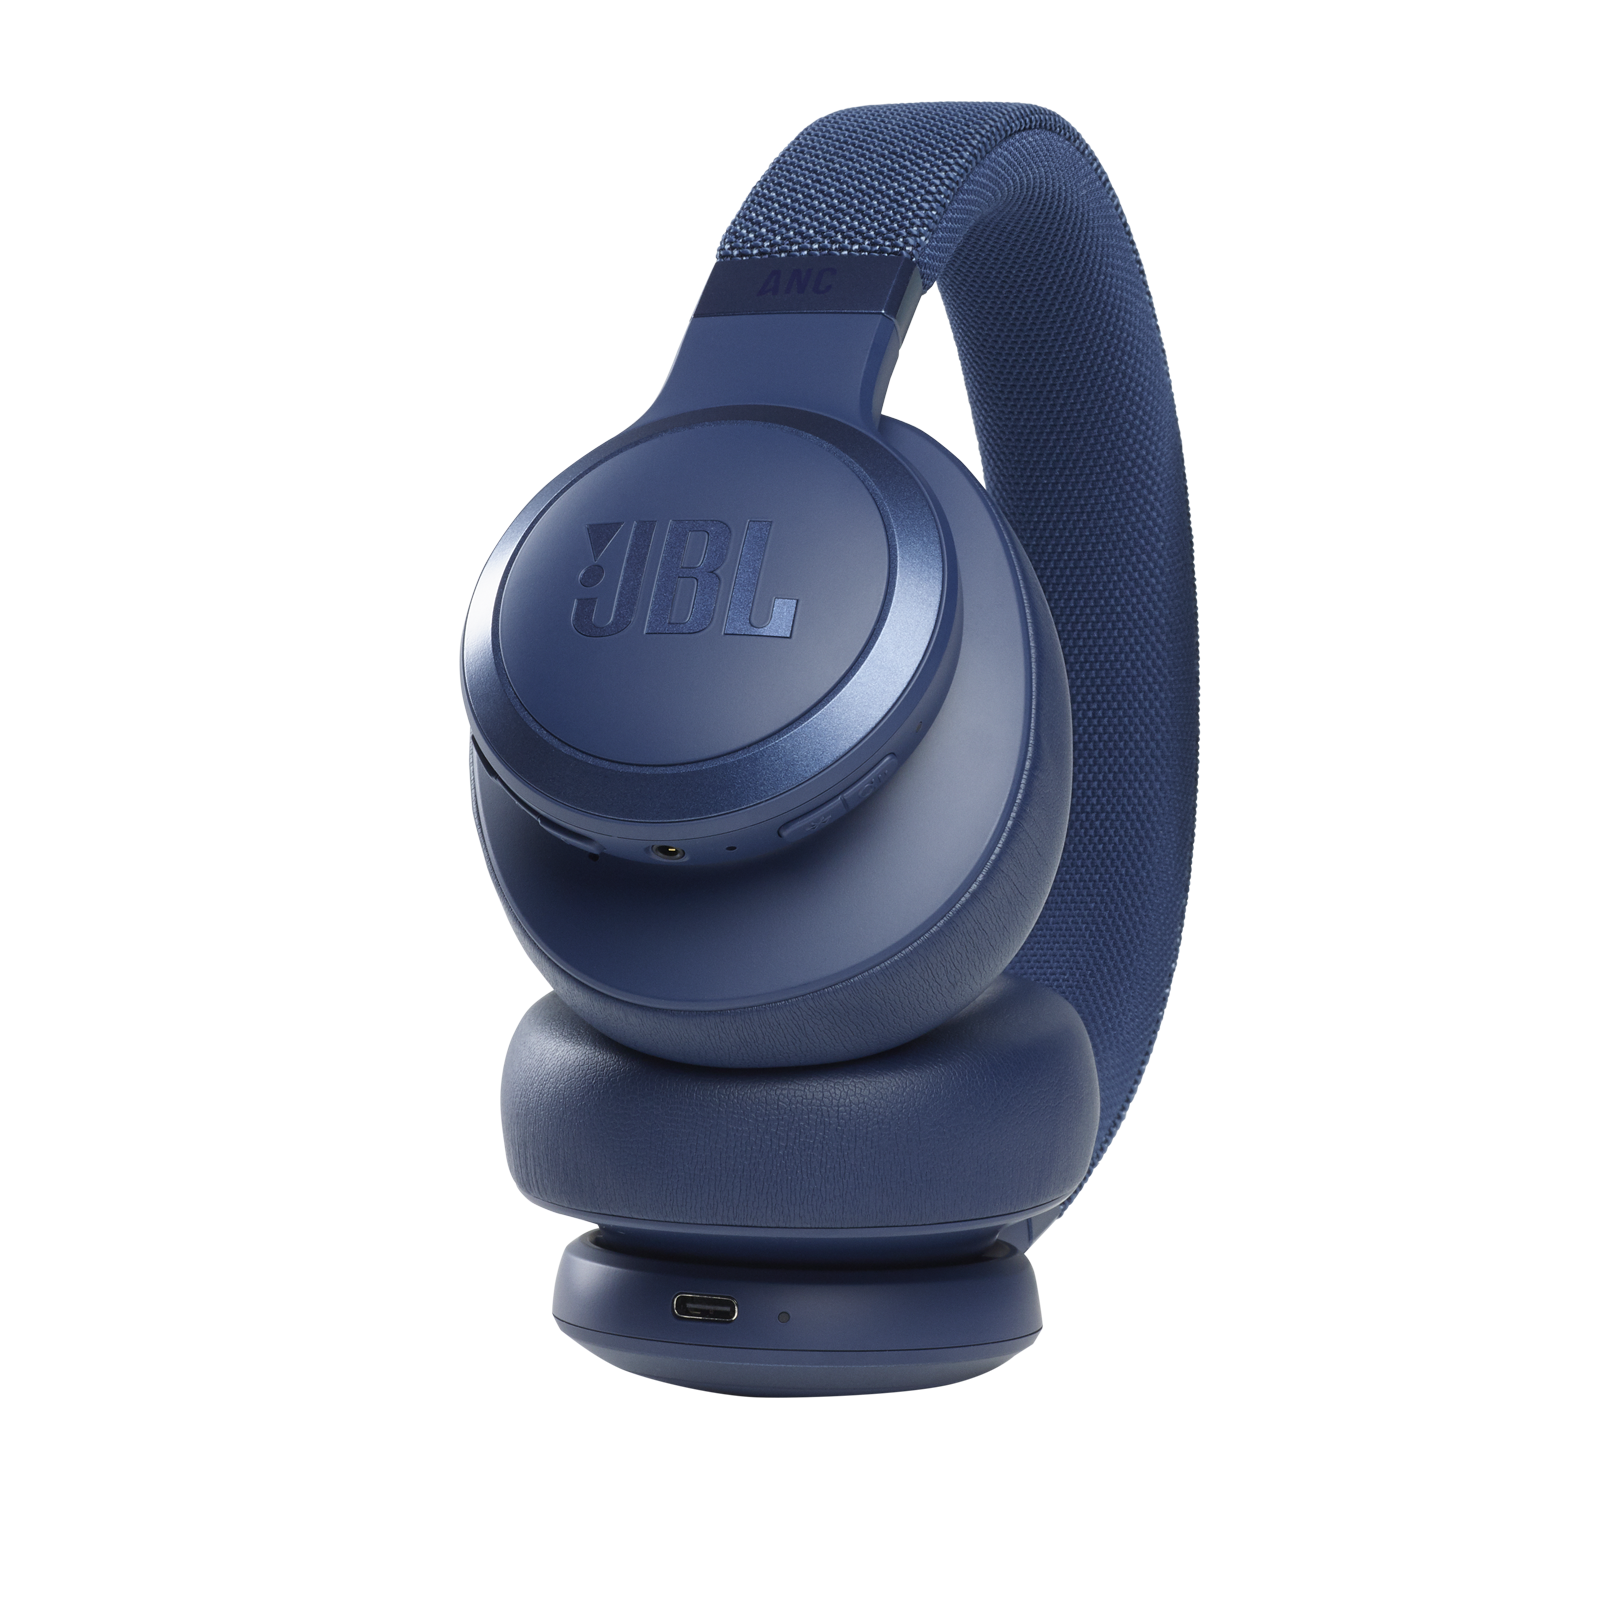 JBL Live 660NC - Blue - WIRELESS OVER-EAR NC HEADPHONES - Detailshot 4